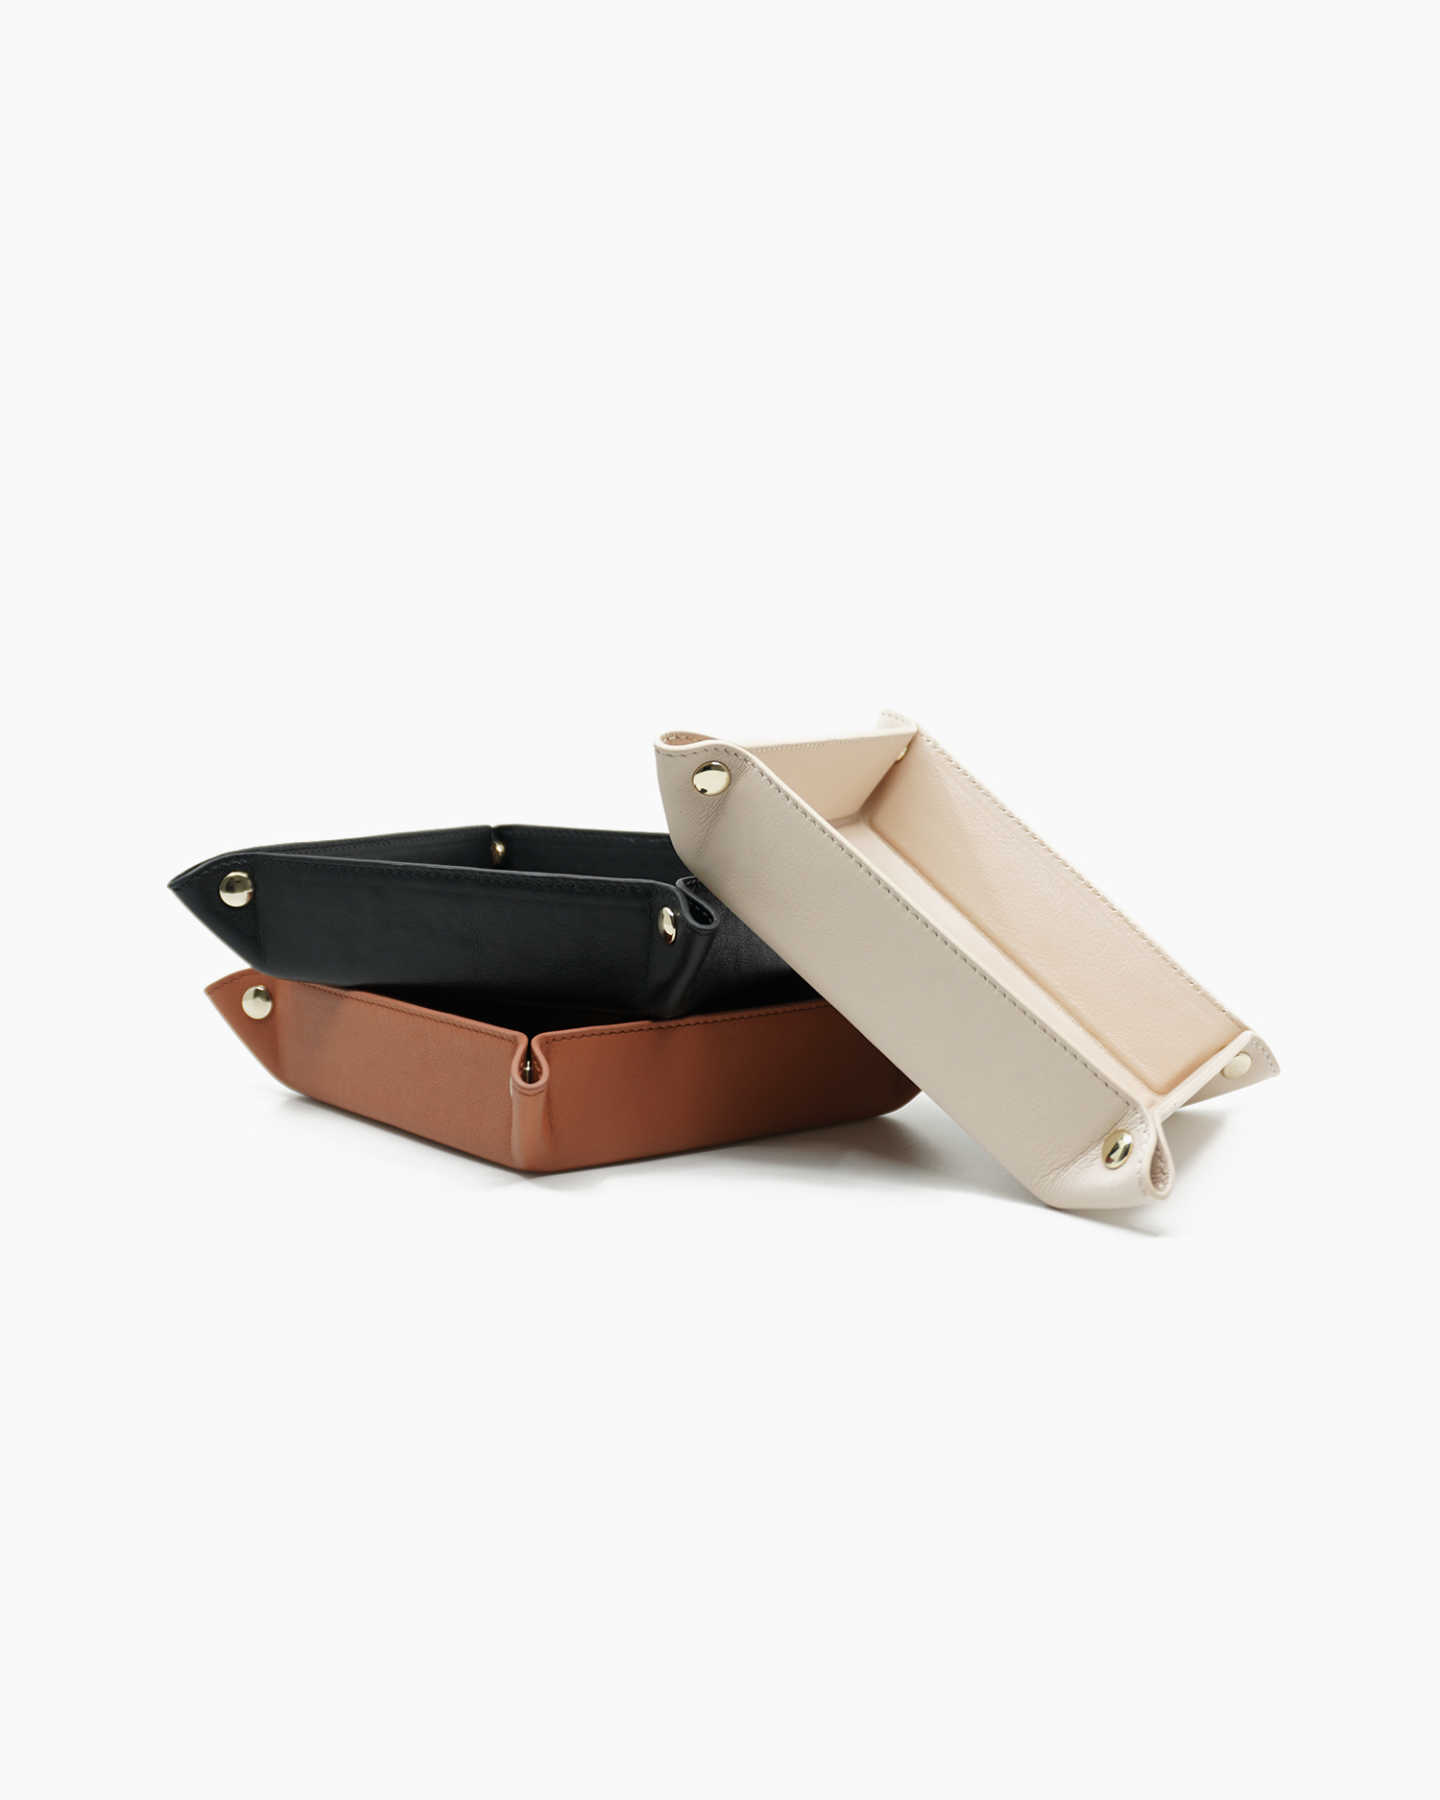 Luxe Full-Grain Leather Valet Tray - Soft Blush - 3